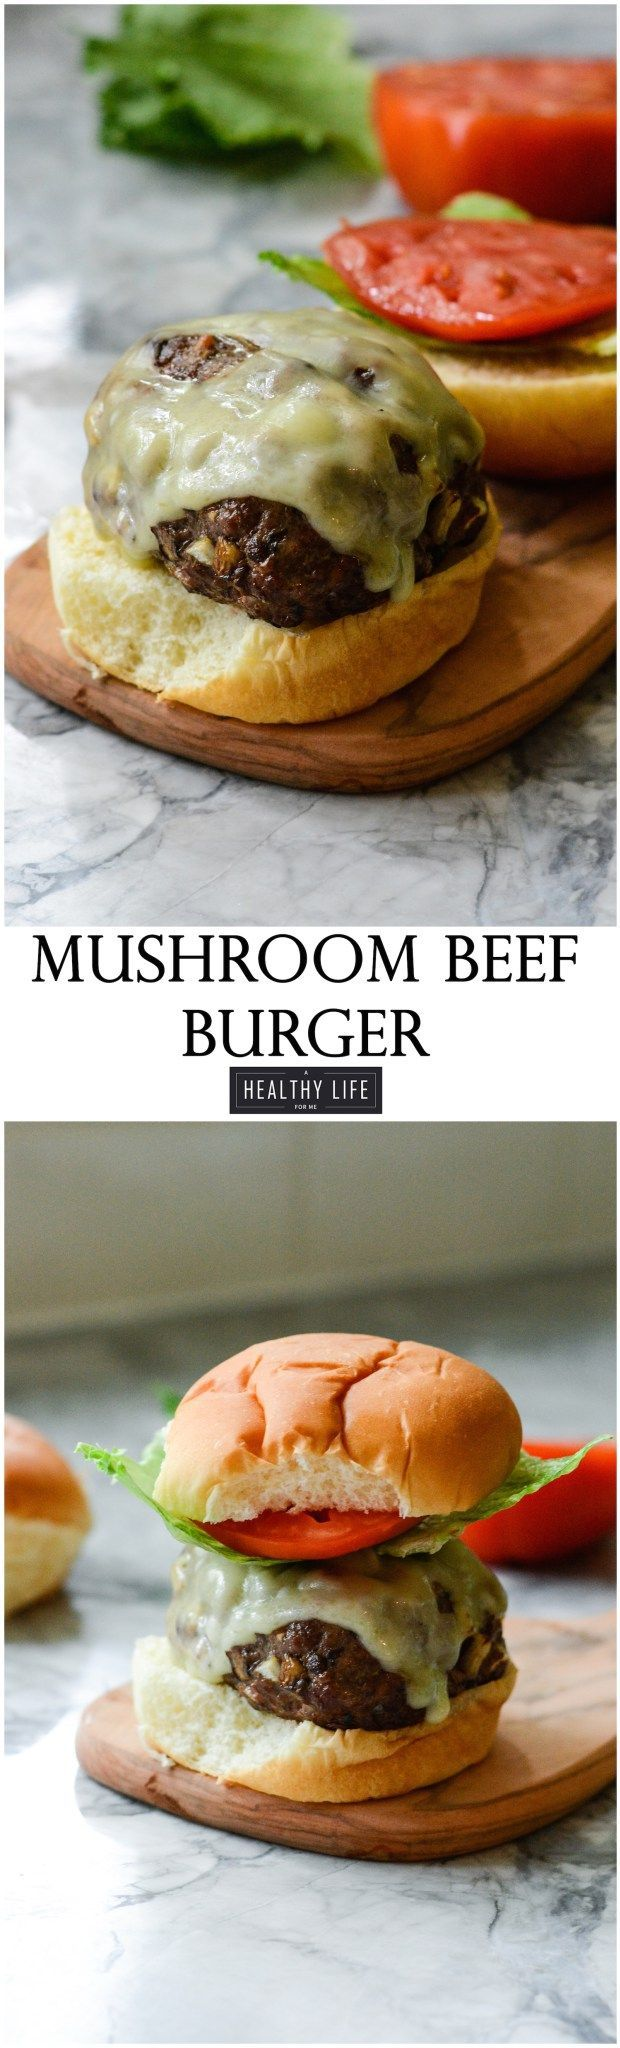 These Mushroom Beef Burgers are moist and flavorful cooked up on the grill and ready in under 30 minutes.  Using grass fed beef, a combination of gourmet mushrooms gives these burgers a robust flavor that makes them leagues better than a plain on beef burger. - A Healthy Life For Me